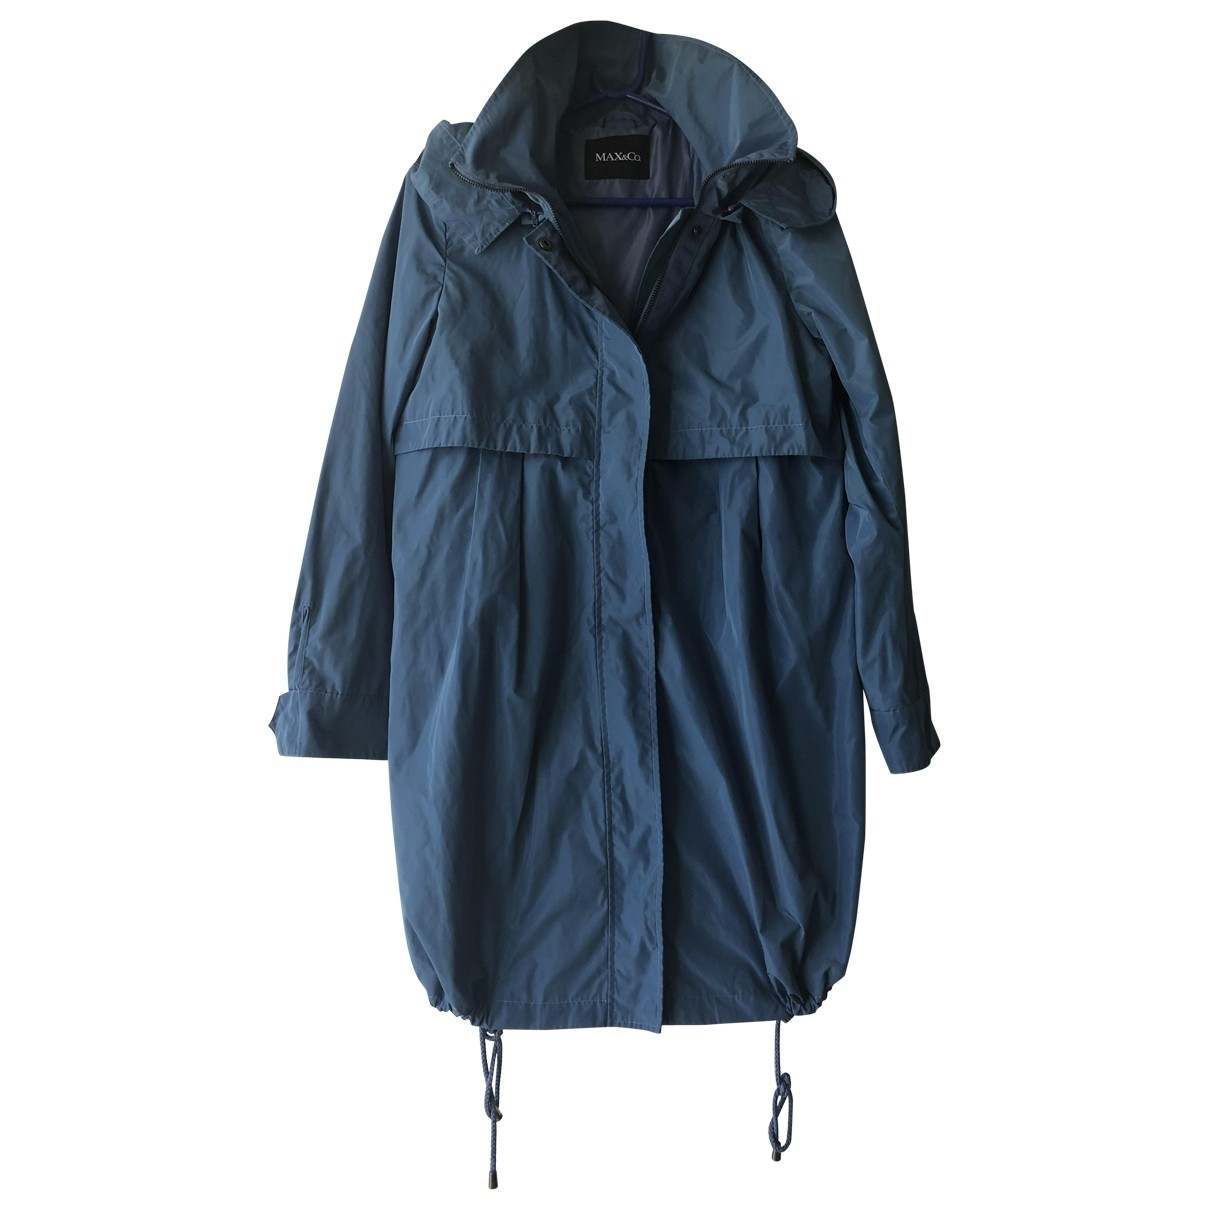 Max & Co \N Trench in  Blau Polyester